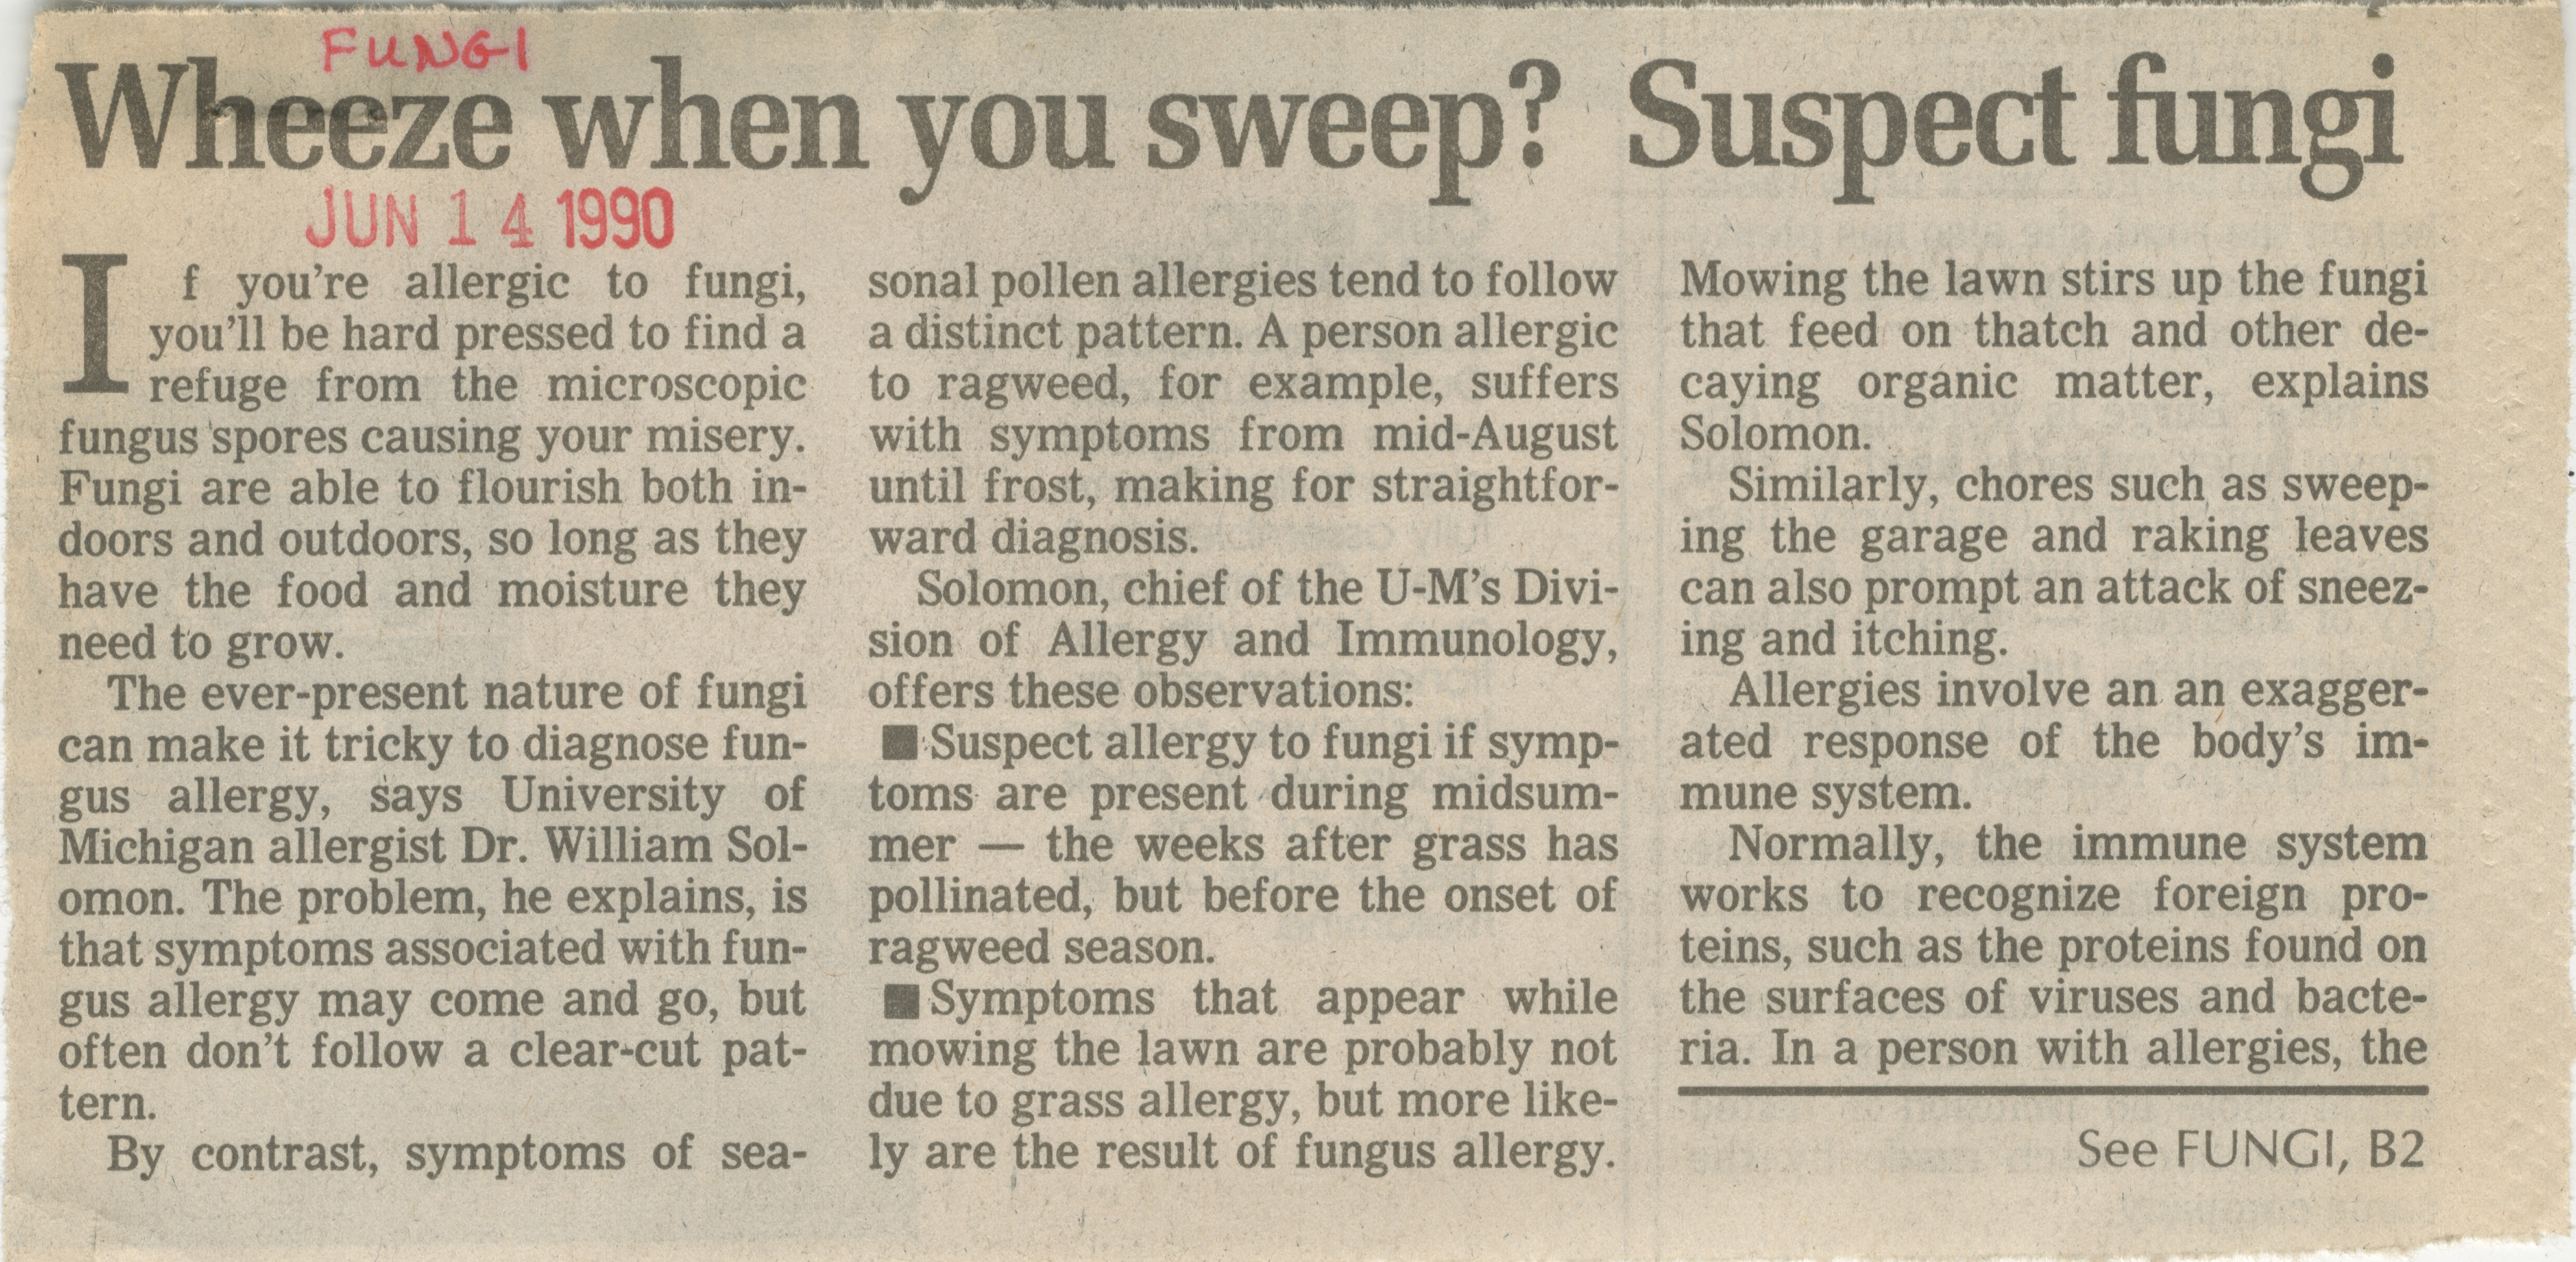 Wheeze When You Sweep? Suspect Fungi image